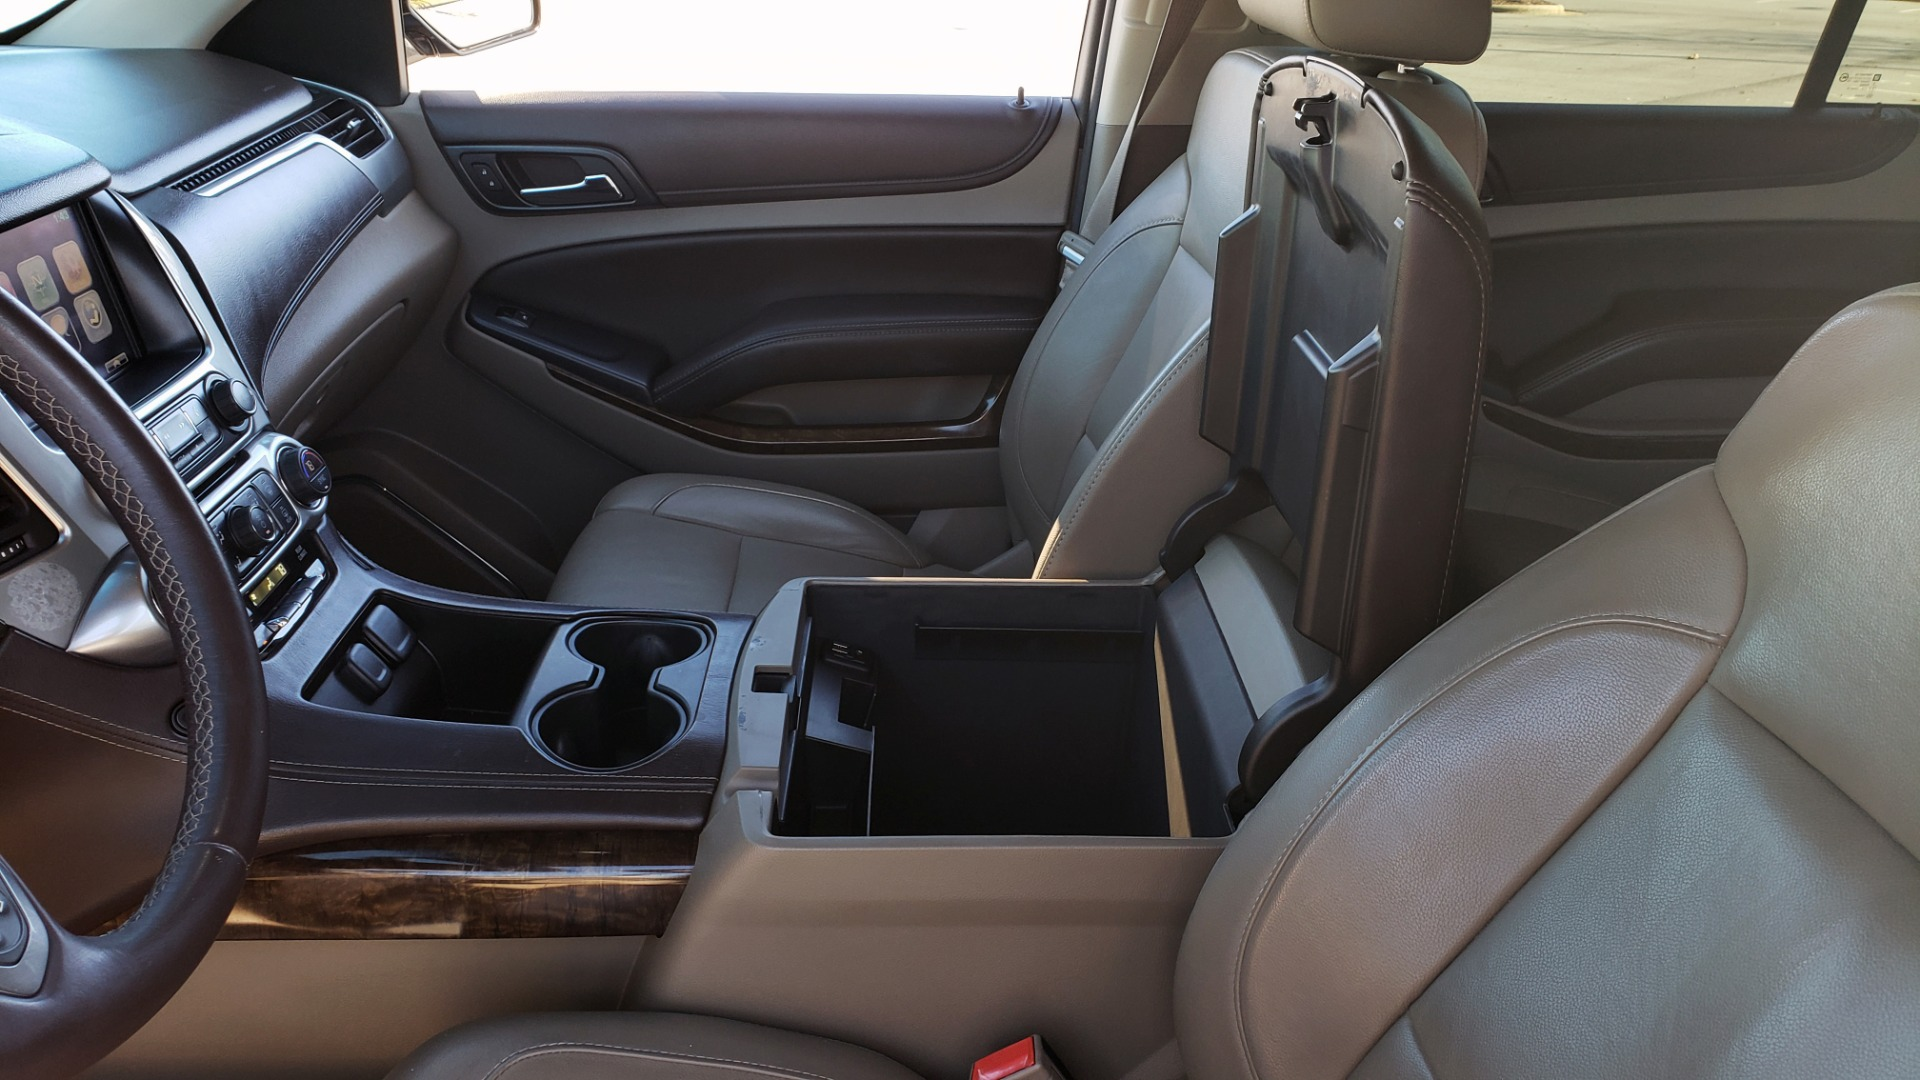 Used 2015 Chevrolet SUBURBAN LT 2WD / NAV / LEATHER / BOSE / 3-ROW / REARVIEW for sale Sold at Formula Imports in Charlotte NC 28227 60